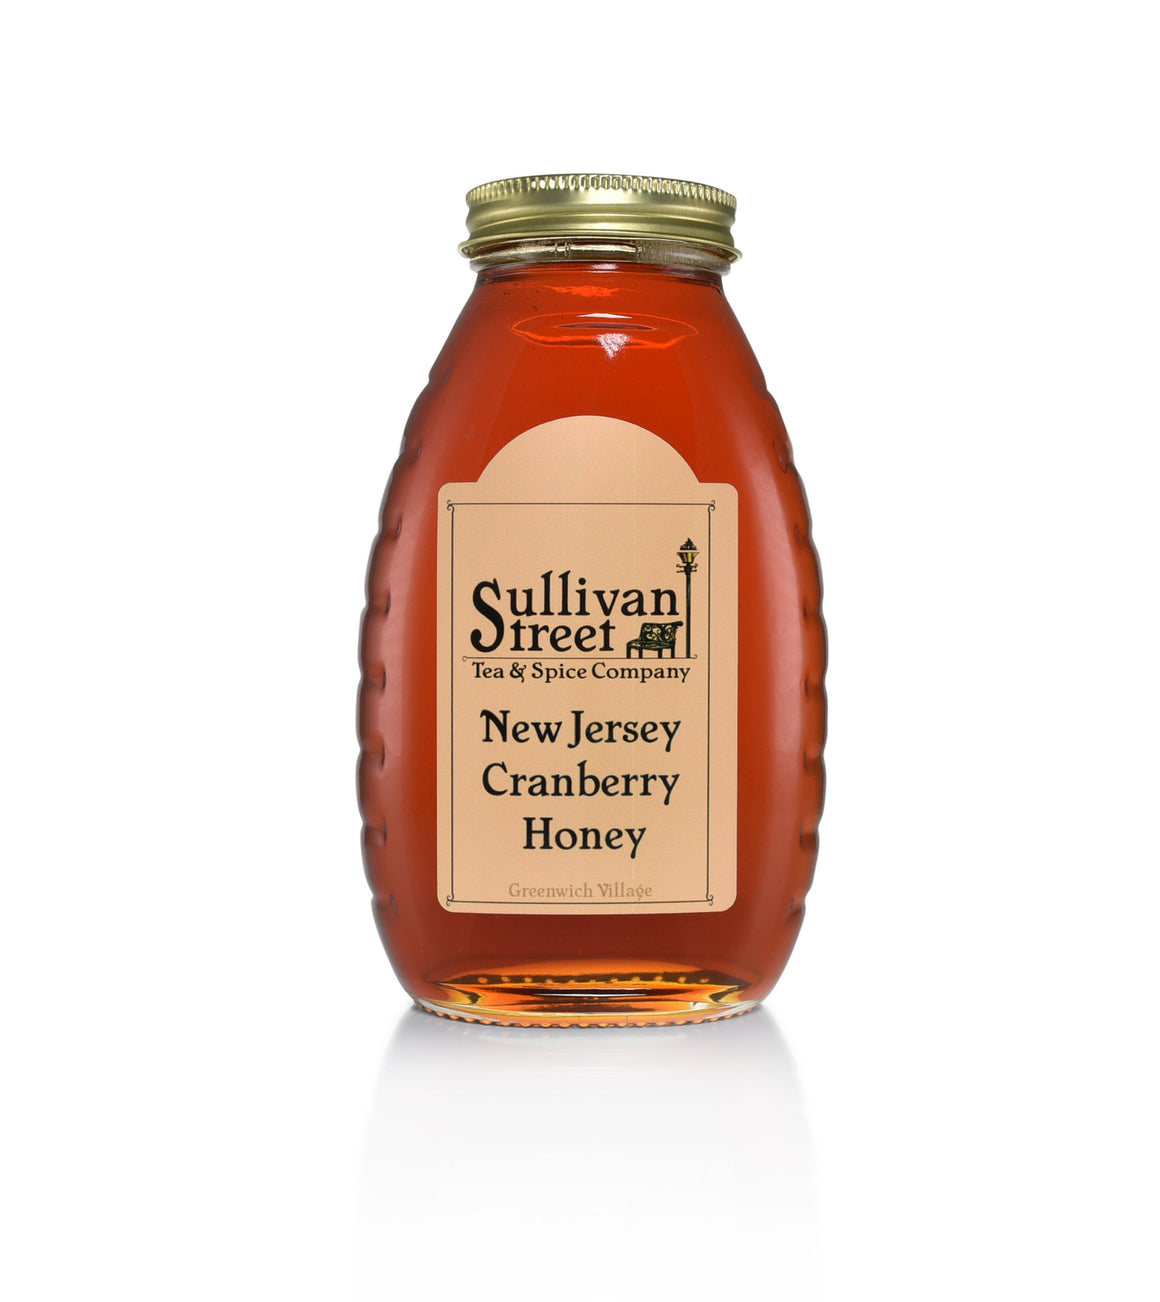 New Jersey Cranberry Honey 🐝 - Sullivan Street Tea & Spice Company